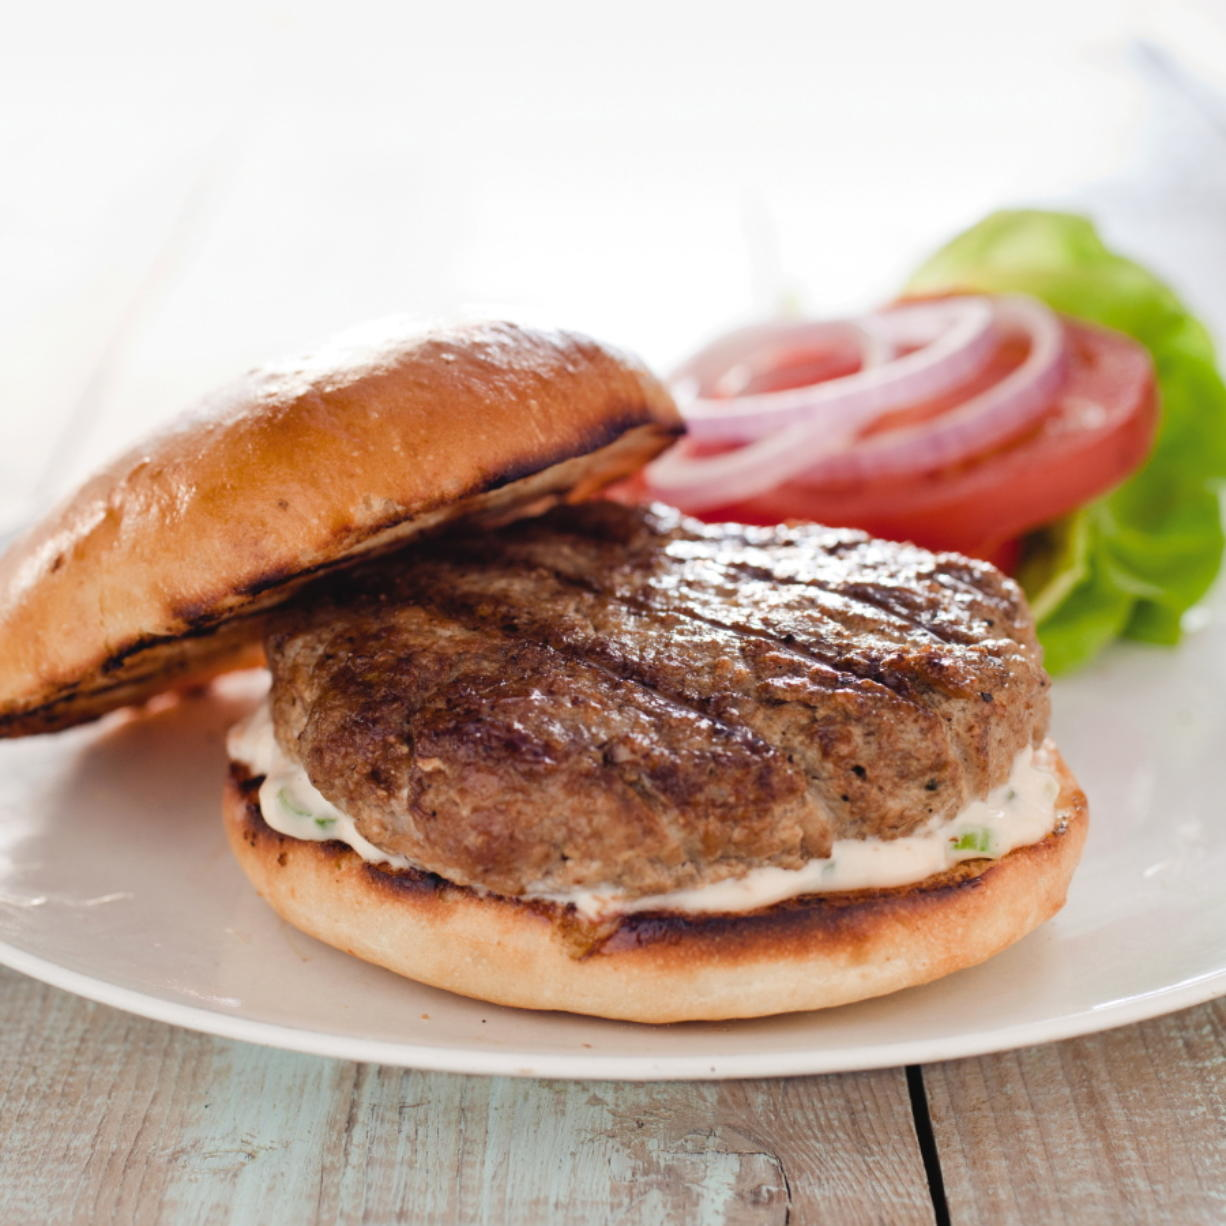 Grind Your Own Turkey Thigh For Great Tasting Juicy Burgers